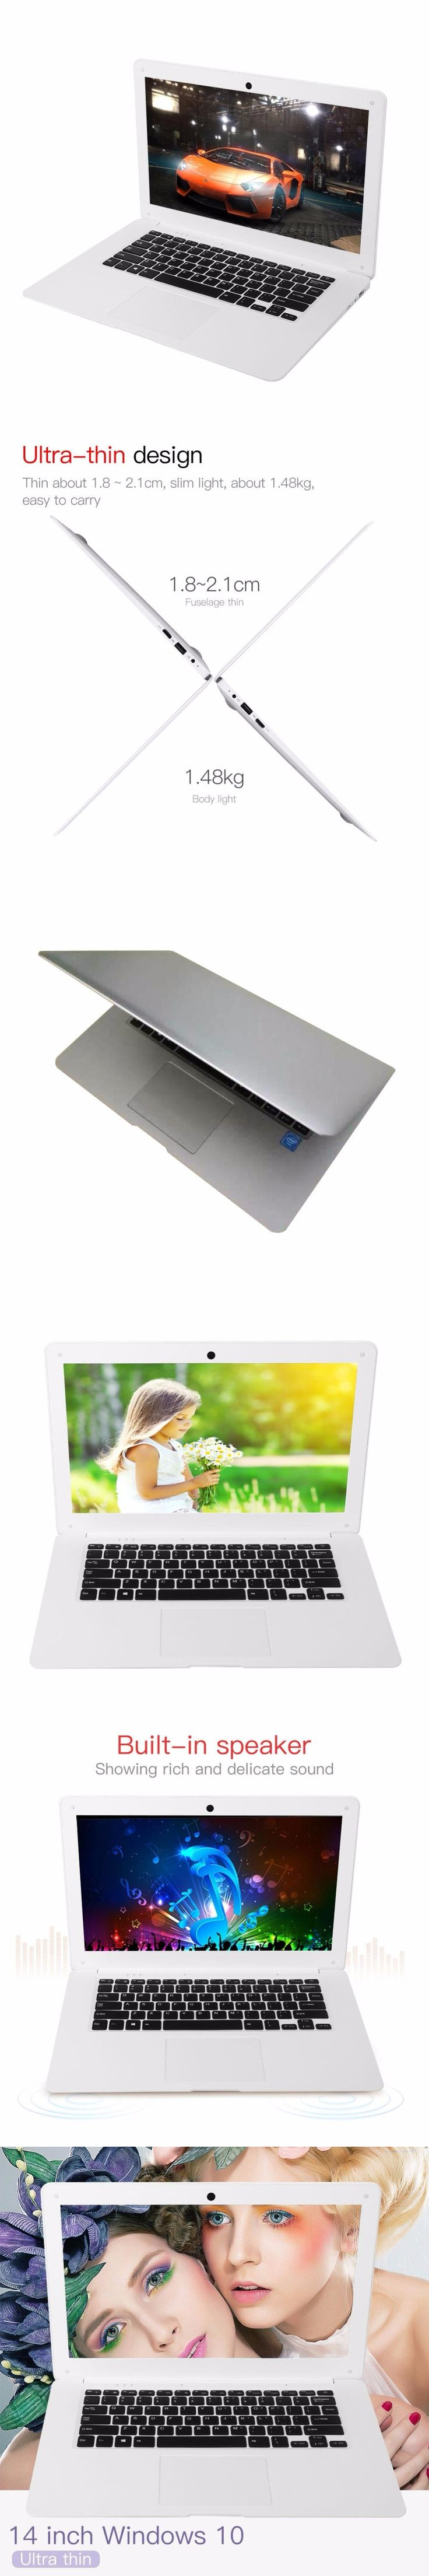 """Cewaal New Version 14"""" Inch Ultra Thin Wifi Laptop Notebook Dual Band Quick Start 1.44GHz Dual Speakers Windows 10"""